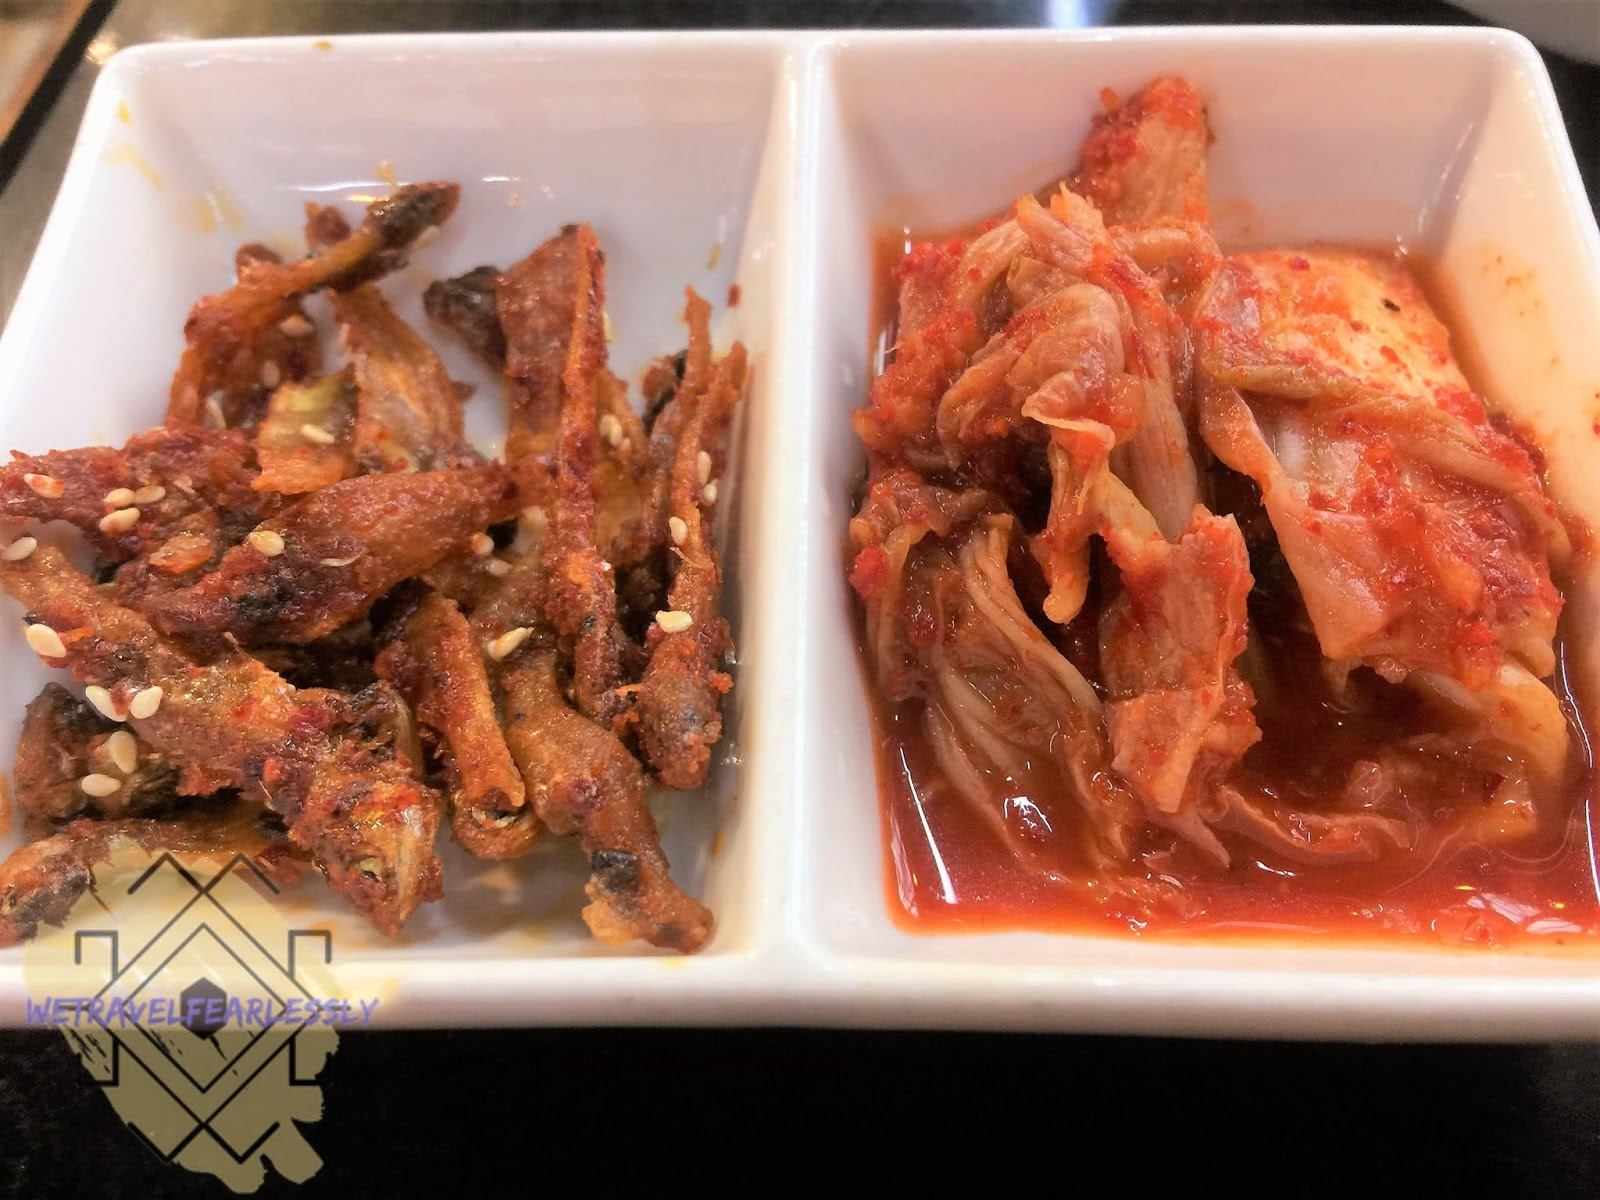 myulchi bokkeum and eomuk bokkeum in Samgyeopmasarap in SM Marikina - WTF Review